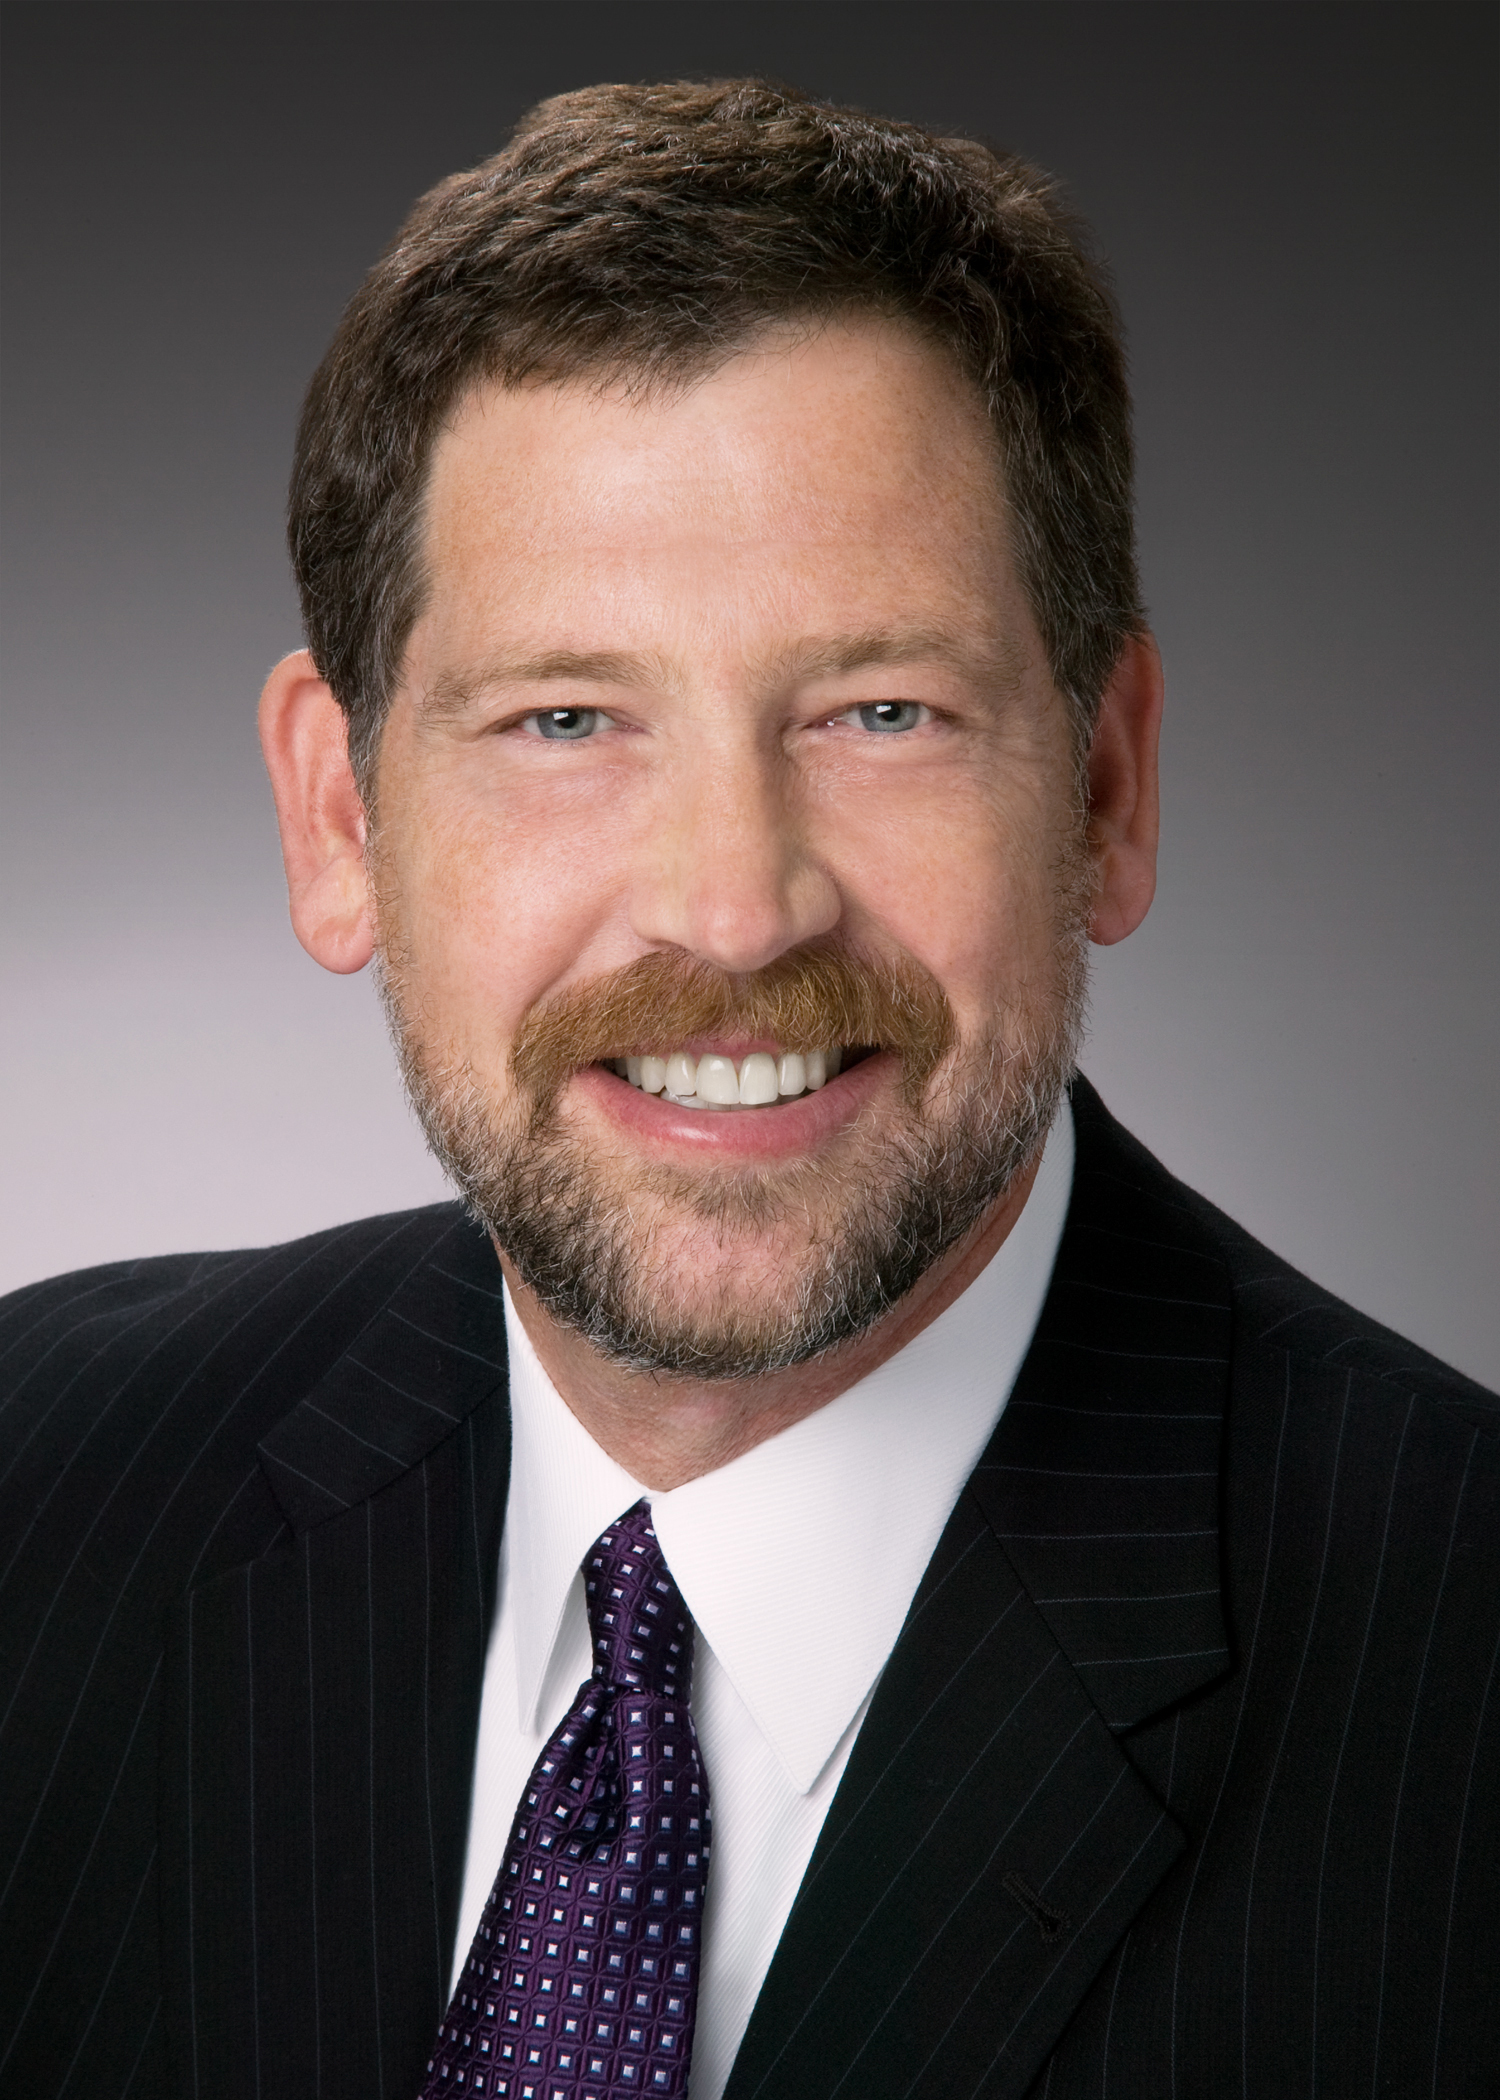 John Della Grotta, a partner in the international law firm of Paul Hastings, served as Chairman of the Board for the Forum for Corporate Directors from 2009 to 2013 and will remain on the Board as Immediate Past Chair. (Photo: Business Wire)